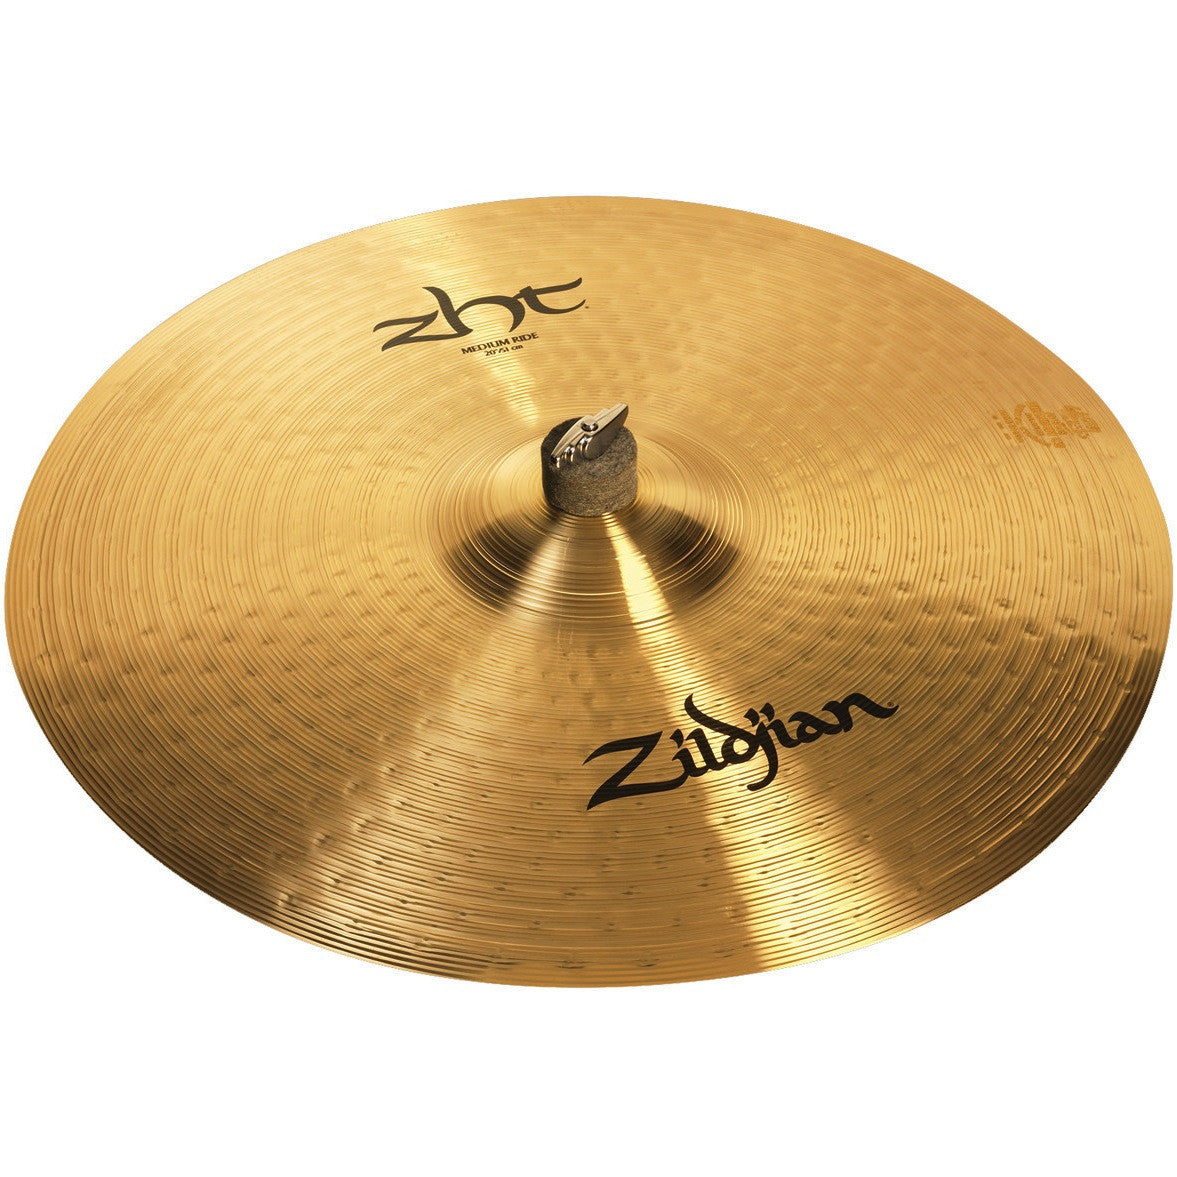 "Zildjian ZHT20MR 20"" Medium Ride"